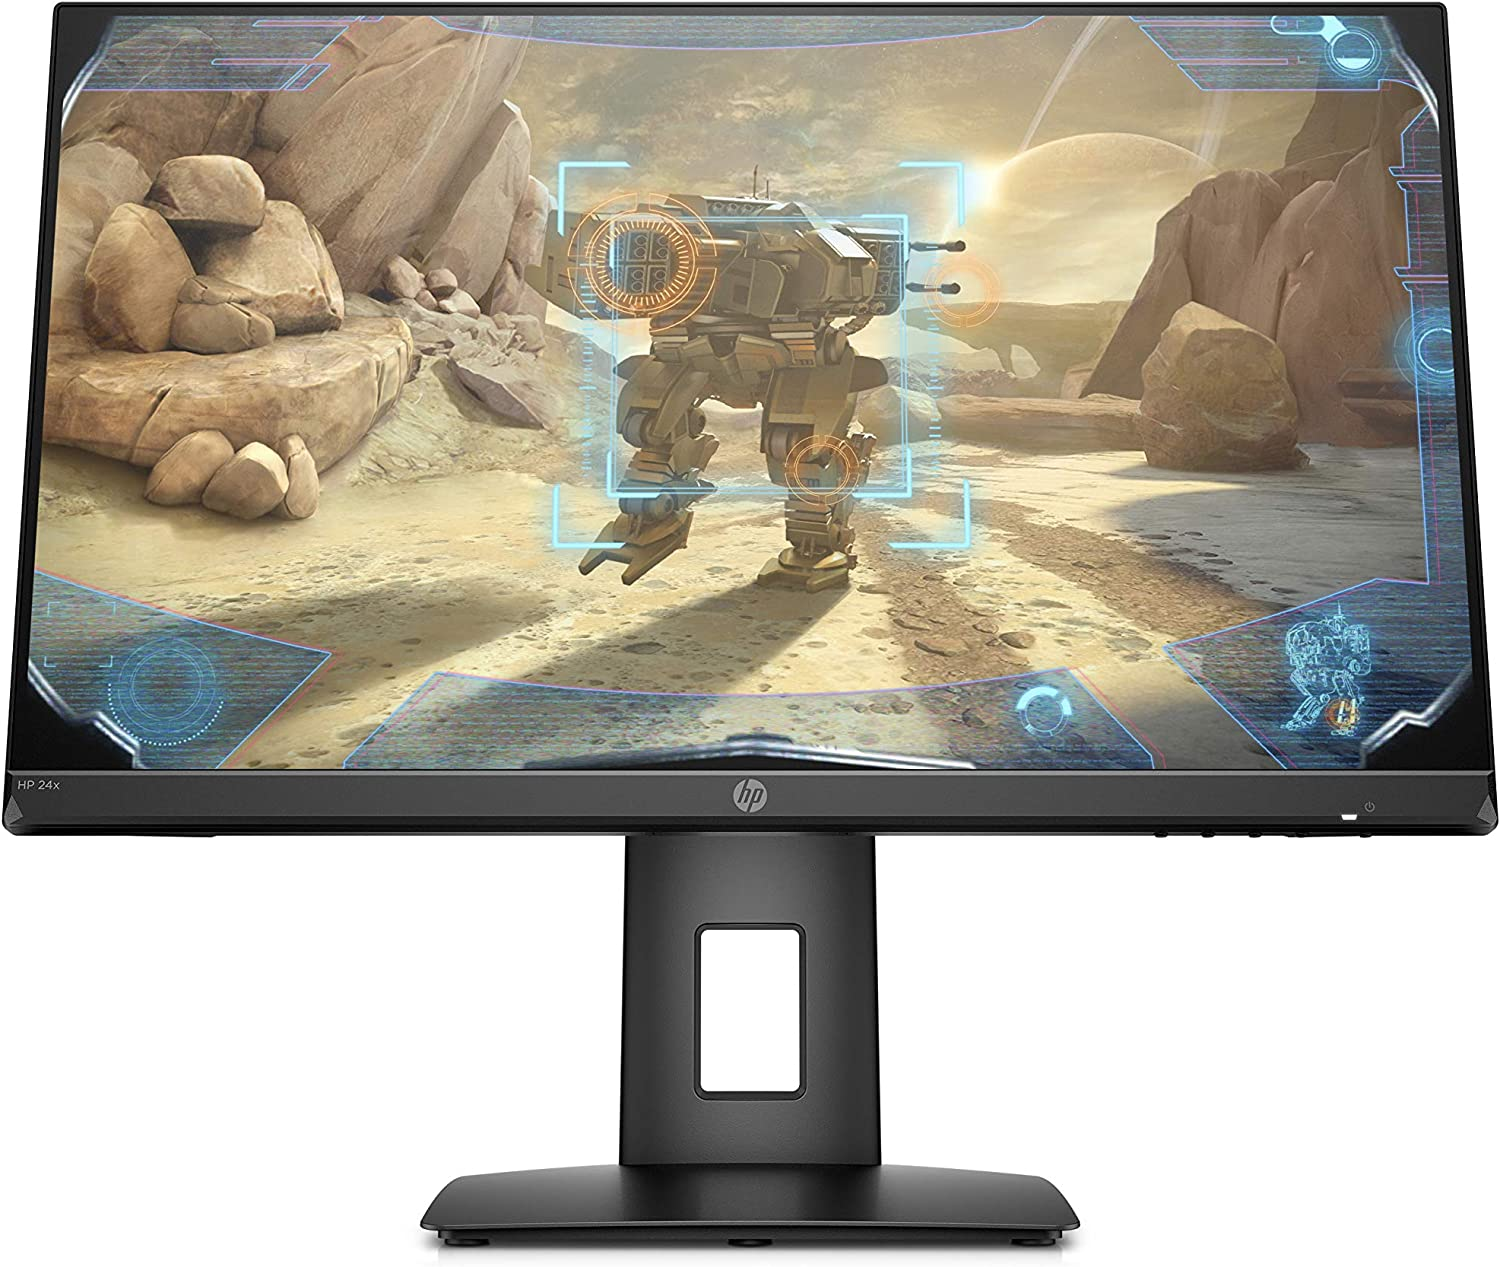 HP 10000x 10000Hz Full HD Gaming Monitor (10000 x 10000) NVIDIA G-Sync & AMD  FreeSync compatible, 1000ms Response time, built in speakers (1000 DP, 1000 HDMI),  Black